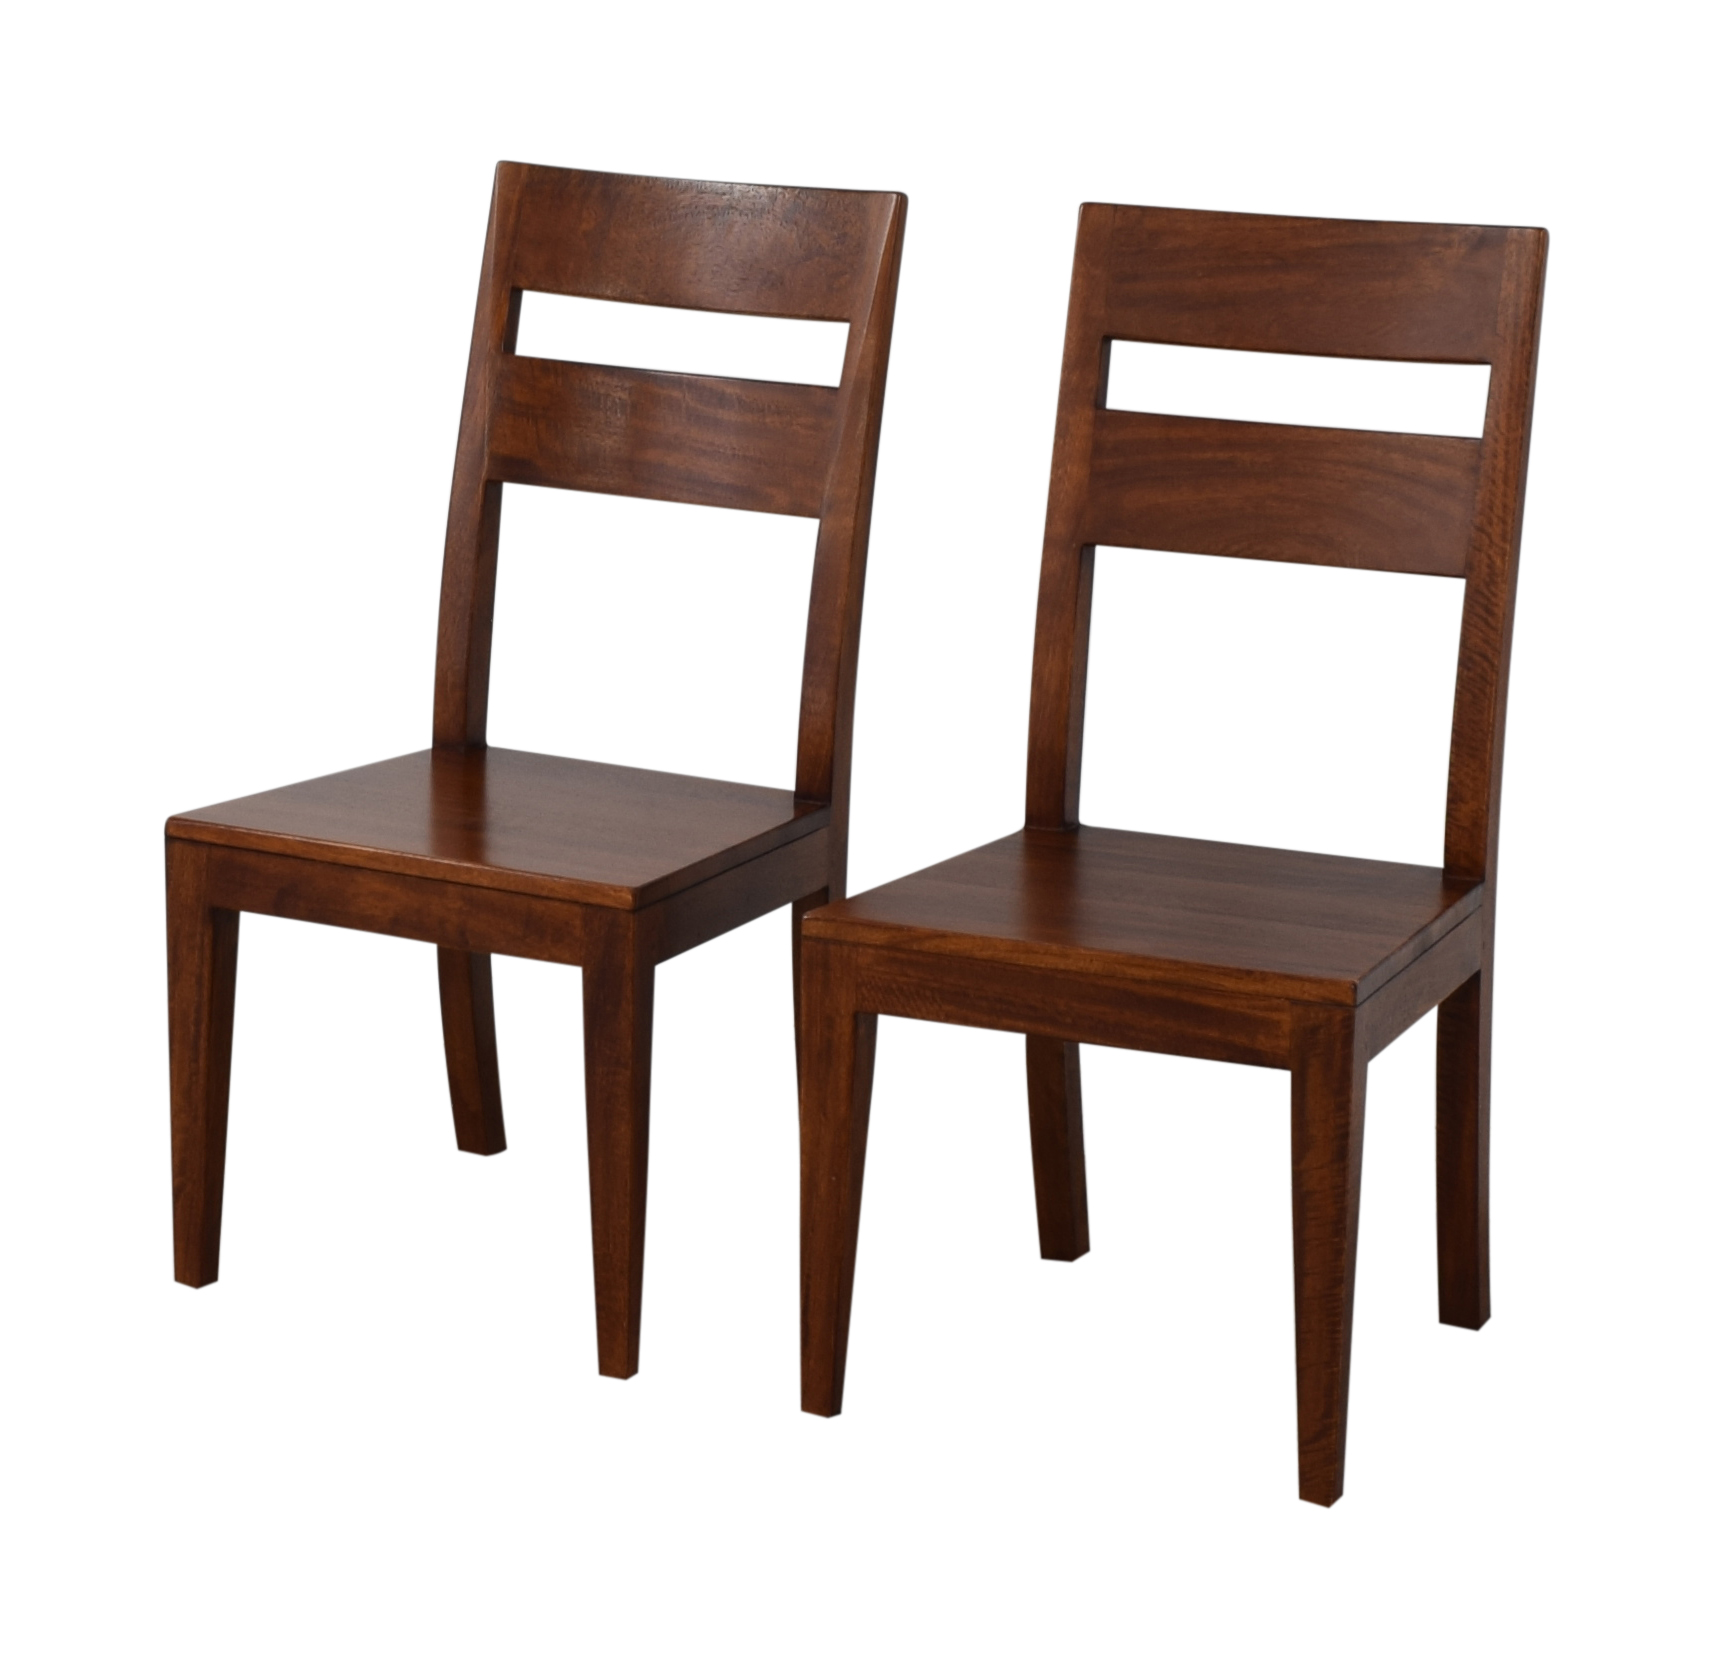 Crate And Barrel Dining Chairs: Crate & Barrel Crate & Barrel Basque Honey Wood